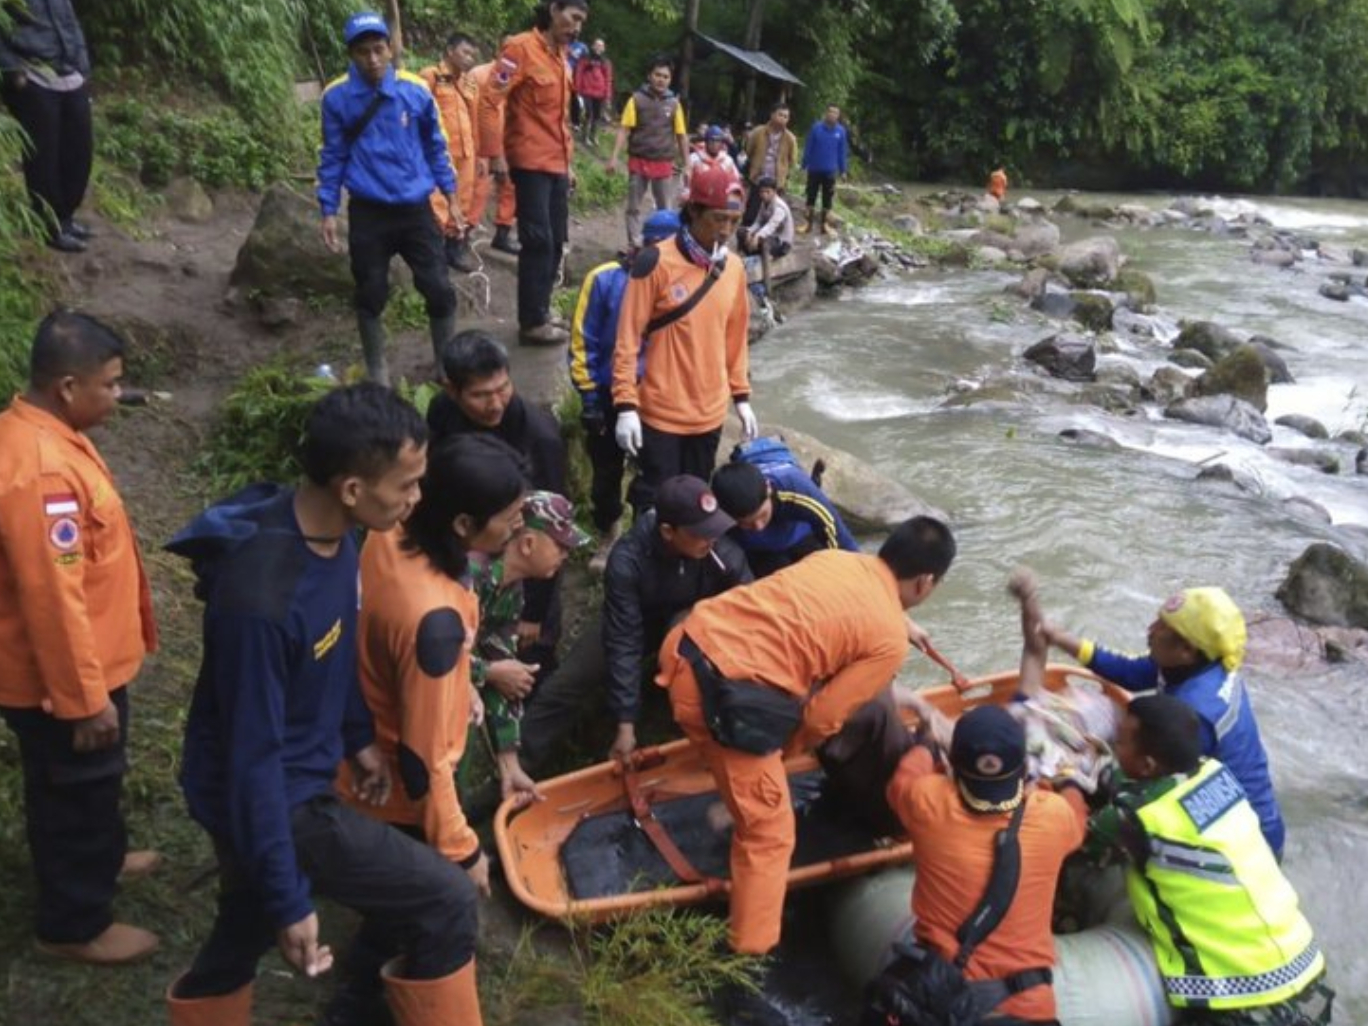 28 killed as bus plunges into ravine in Indonesia